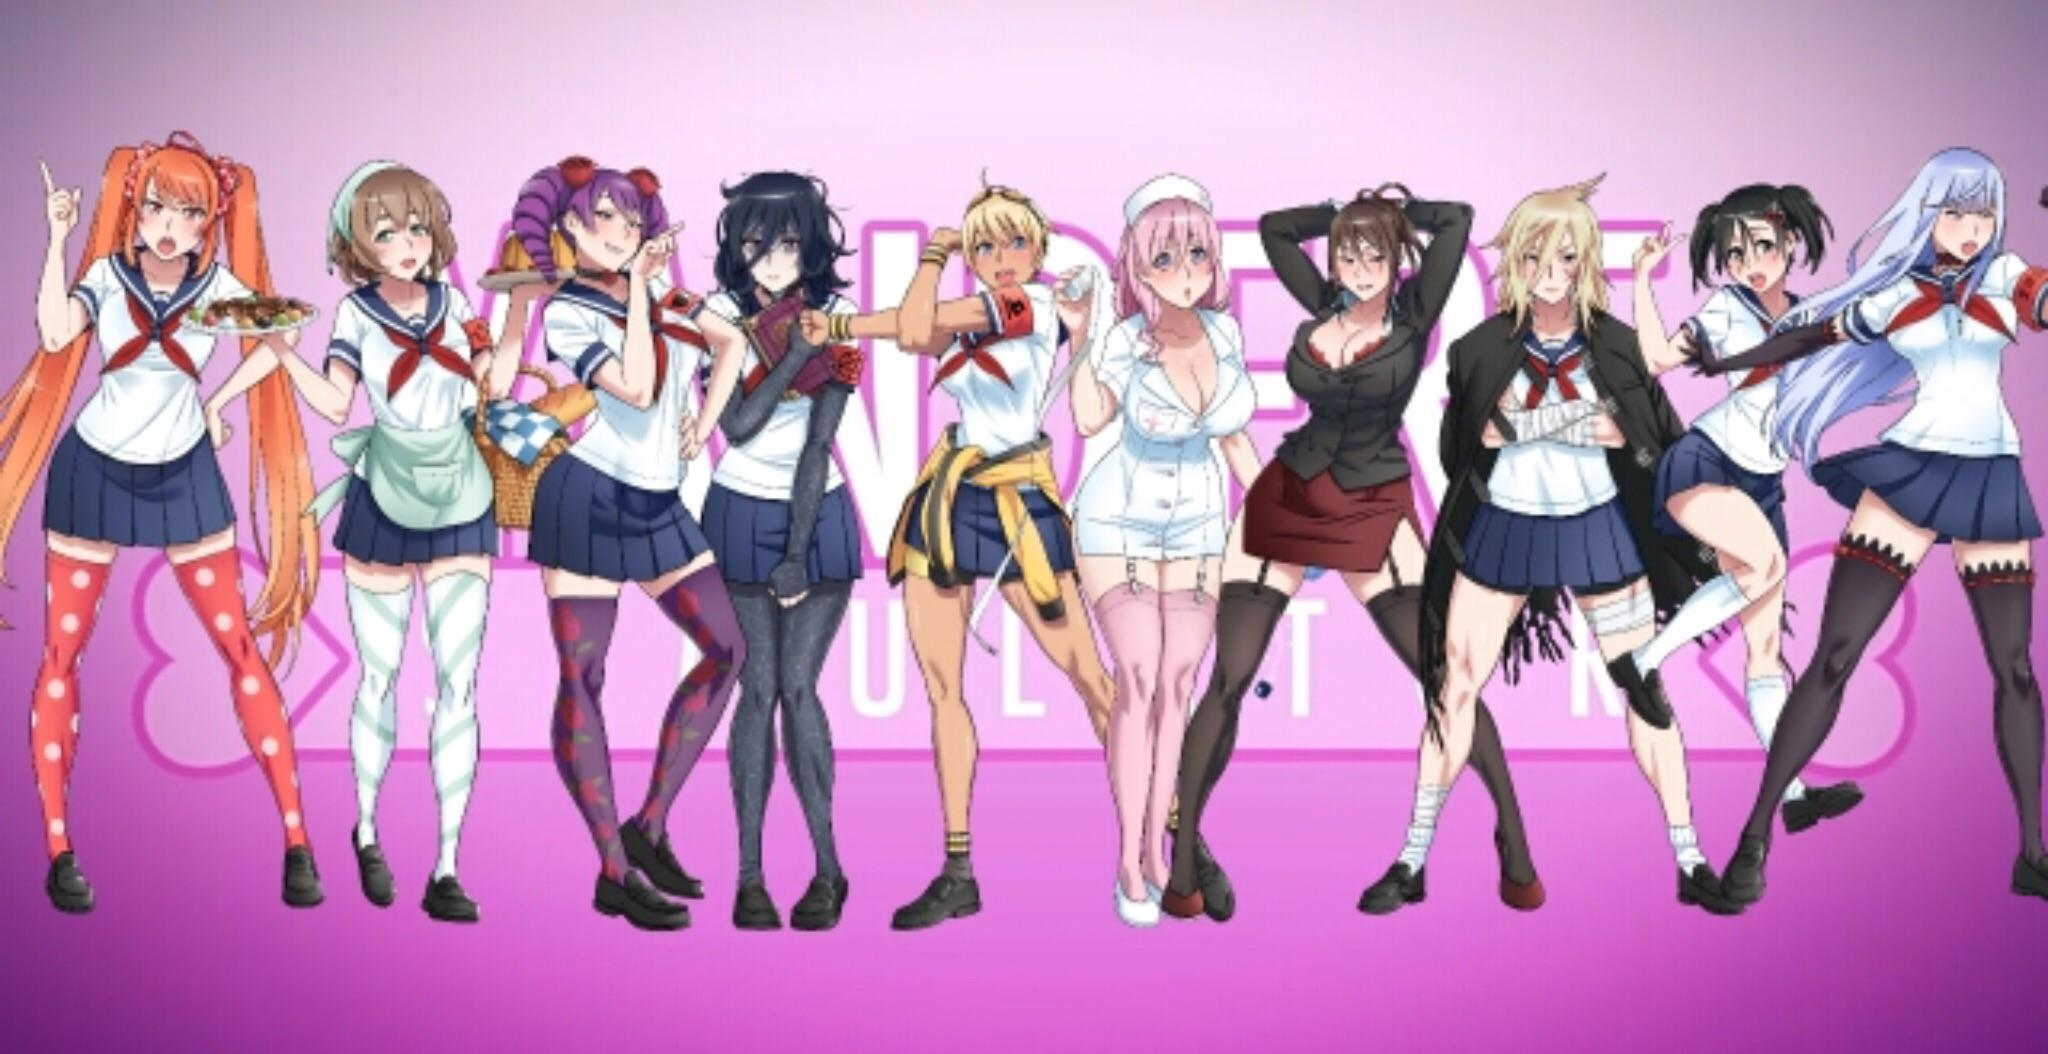 Which rival are you from yandere simulator?